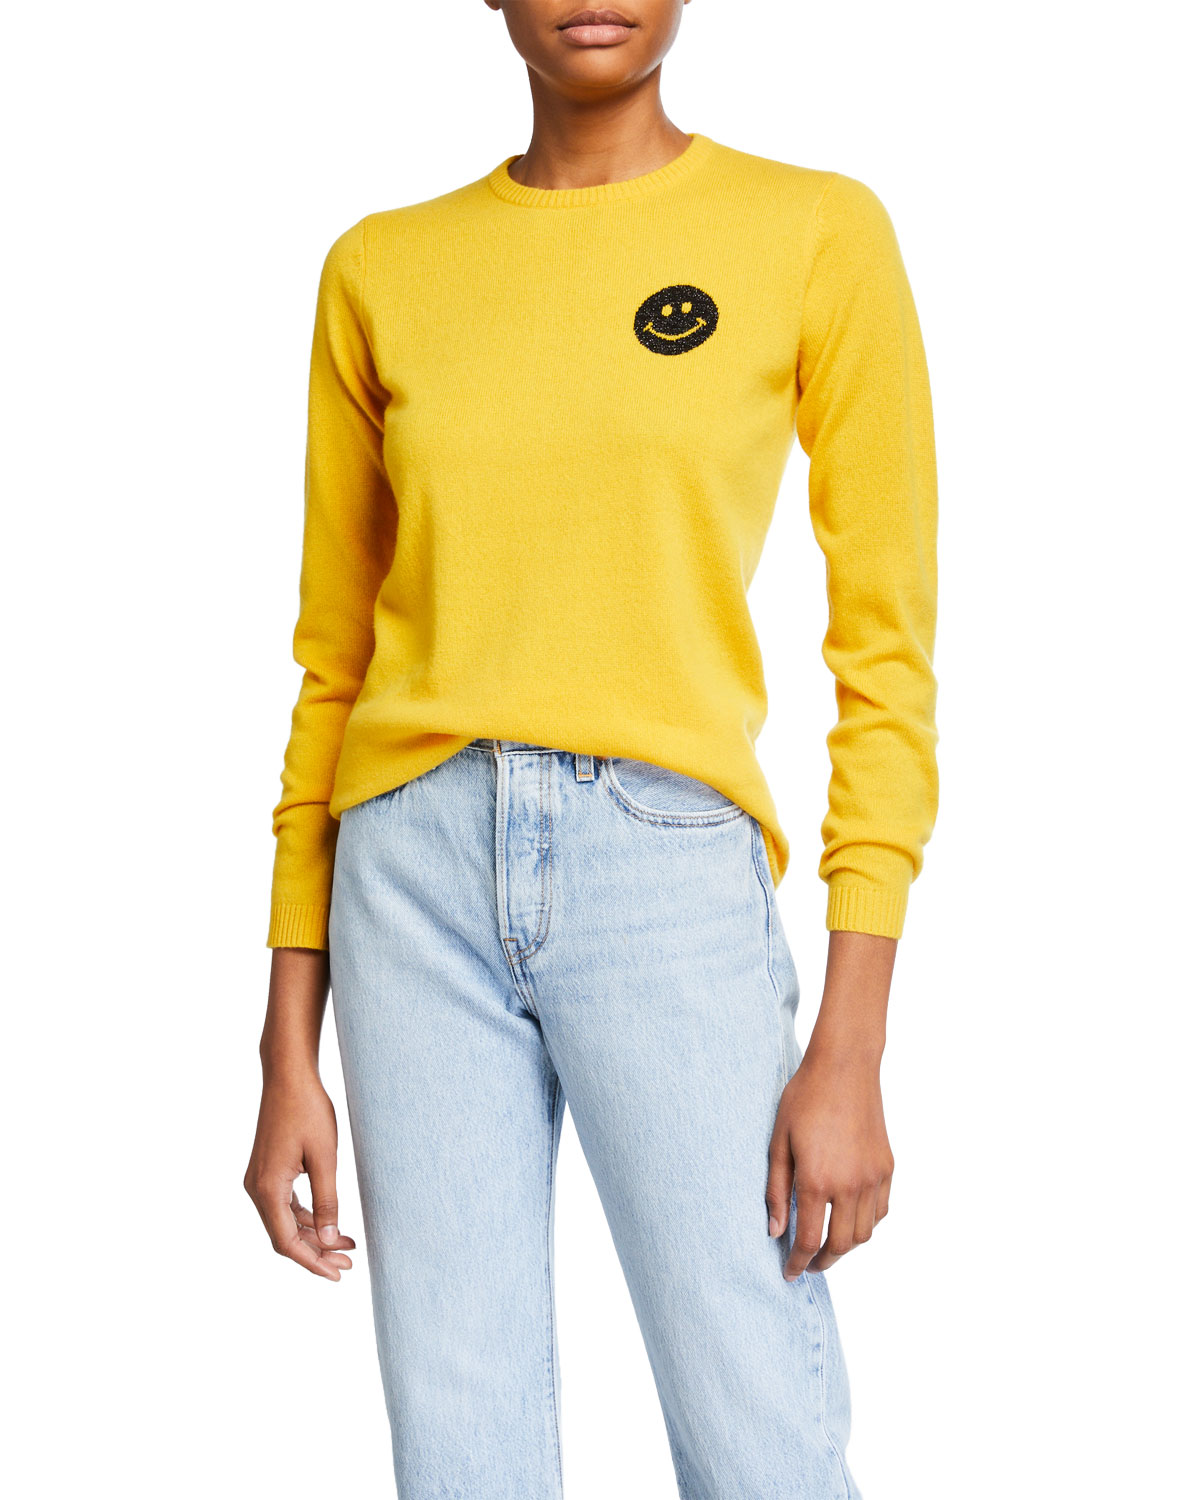 Bella Freud Sweaters HAPPY SMILEY FACE CASHMERE SWEATER